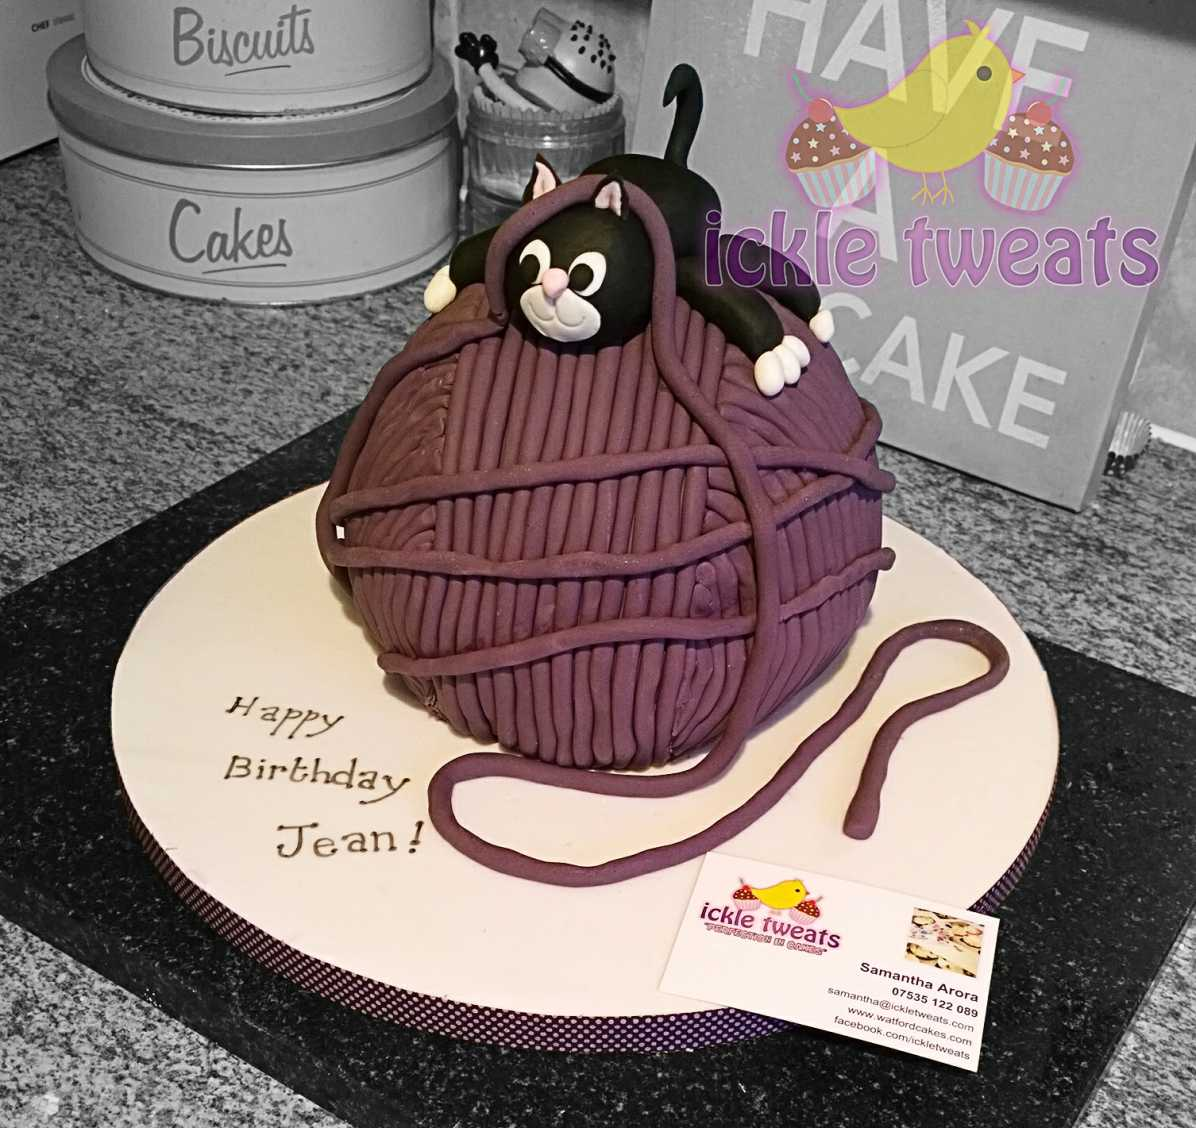 Adult Cakes Ickletweats